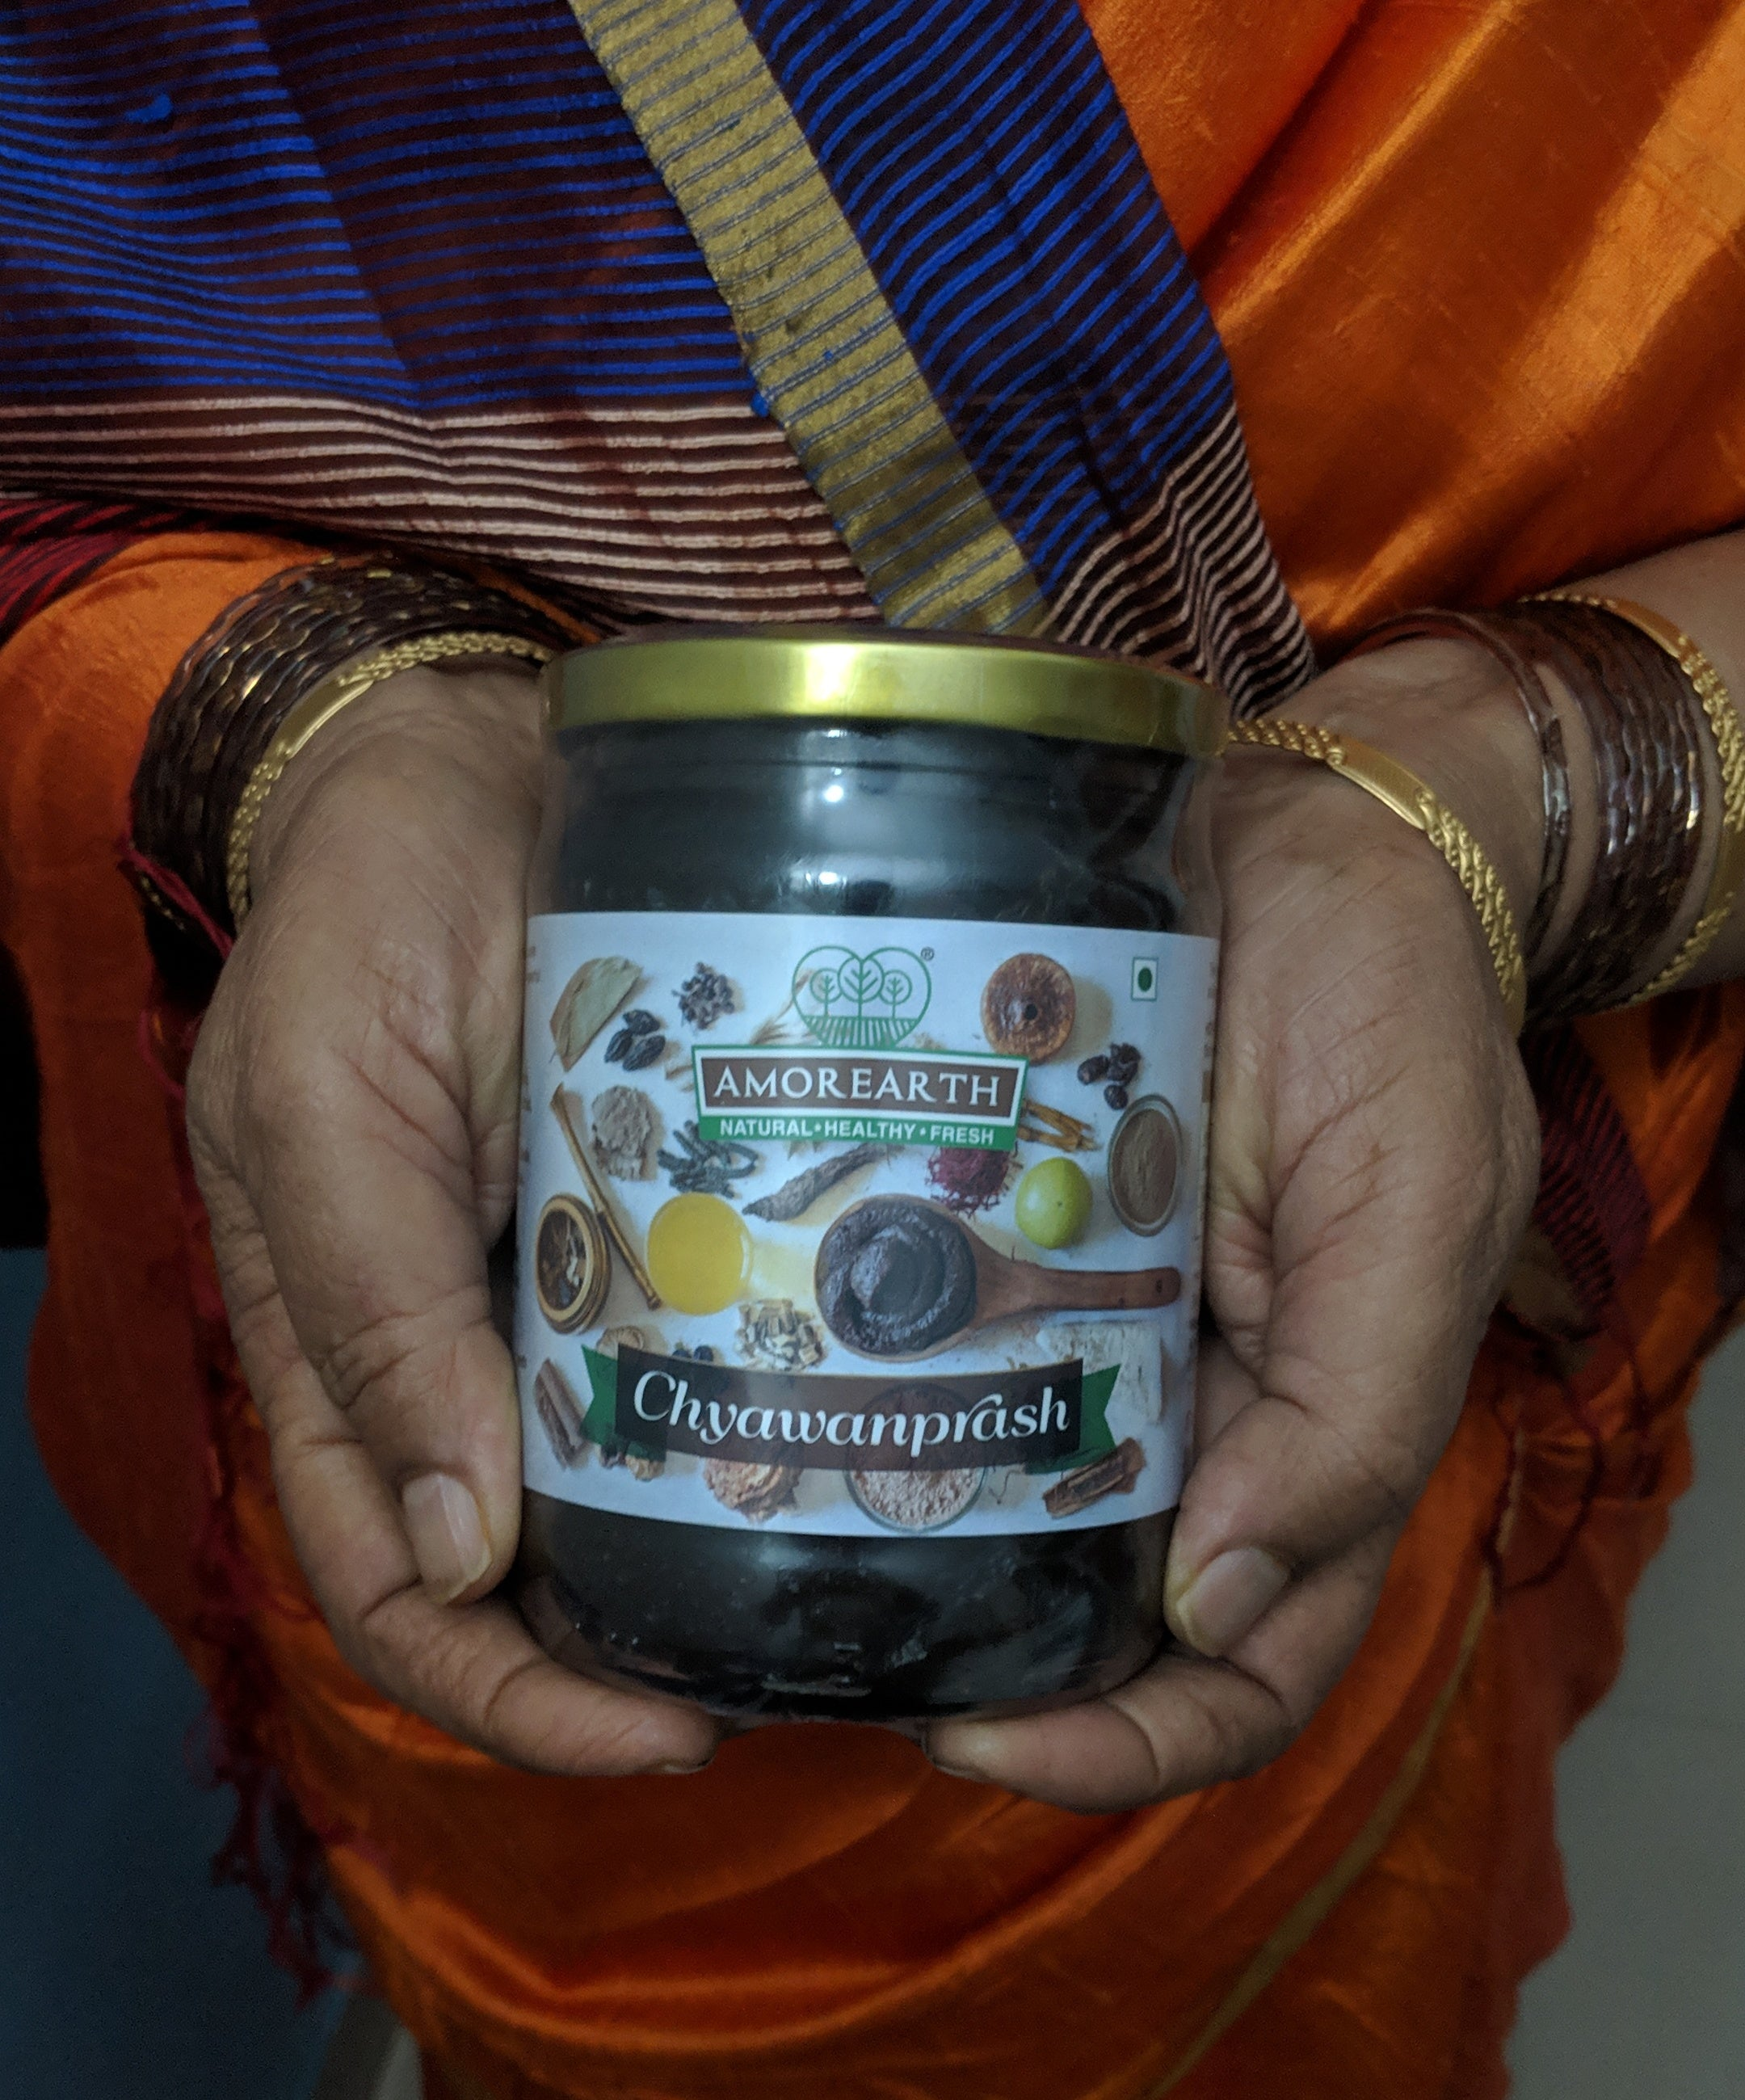 organic Food, Organic Farming, Why is Organic expensive, Organic produce, Naturally grown food, Organic Movement, Farmers of India, Organic Farmers of India, Satyajit and Ajinkya, Two Brothers Organic Farms, TBOF, Bhodani, Farmers of Maharashtra, Farmers Movement, Desi Ghee cost, Why is Gir Cow Bilona Ghee costly, Bilona Ghee, Jaggery, Pure Organic Jaggery, Cost of Food, Chemical Free food, Refined Oils, Cold Pressed Oils